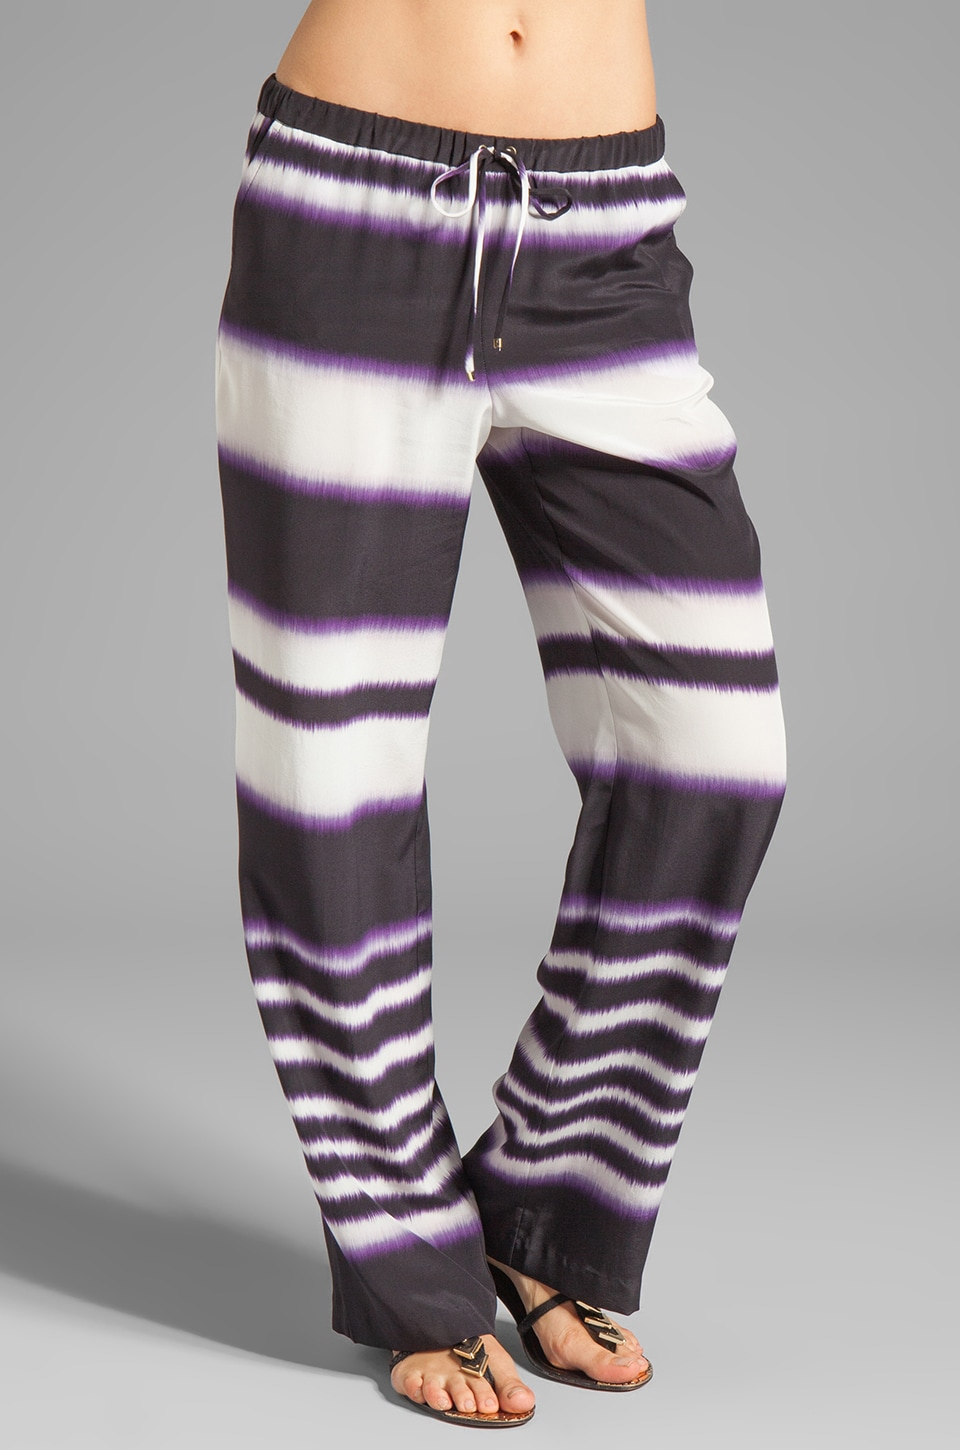 Trina Turk Ink Stripe Ikat Yuma Pant in Black Plum